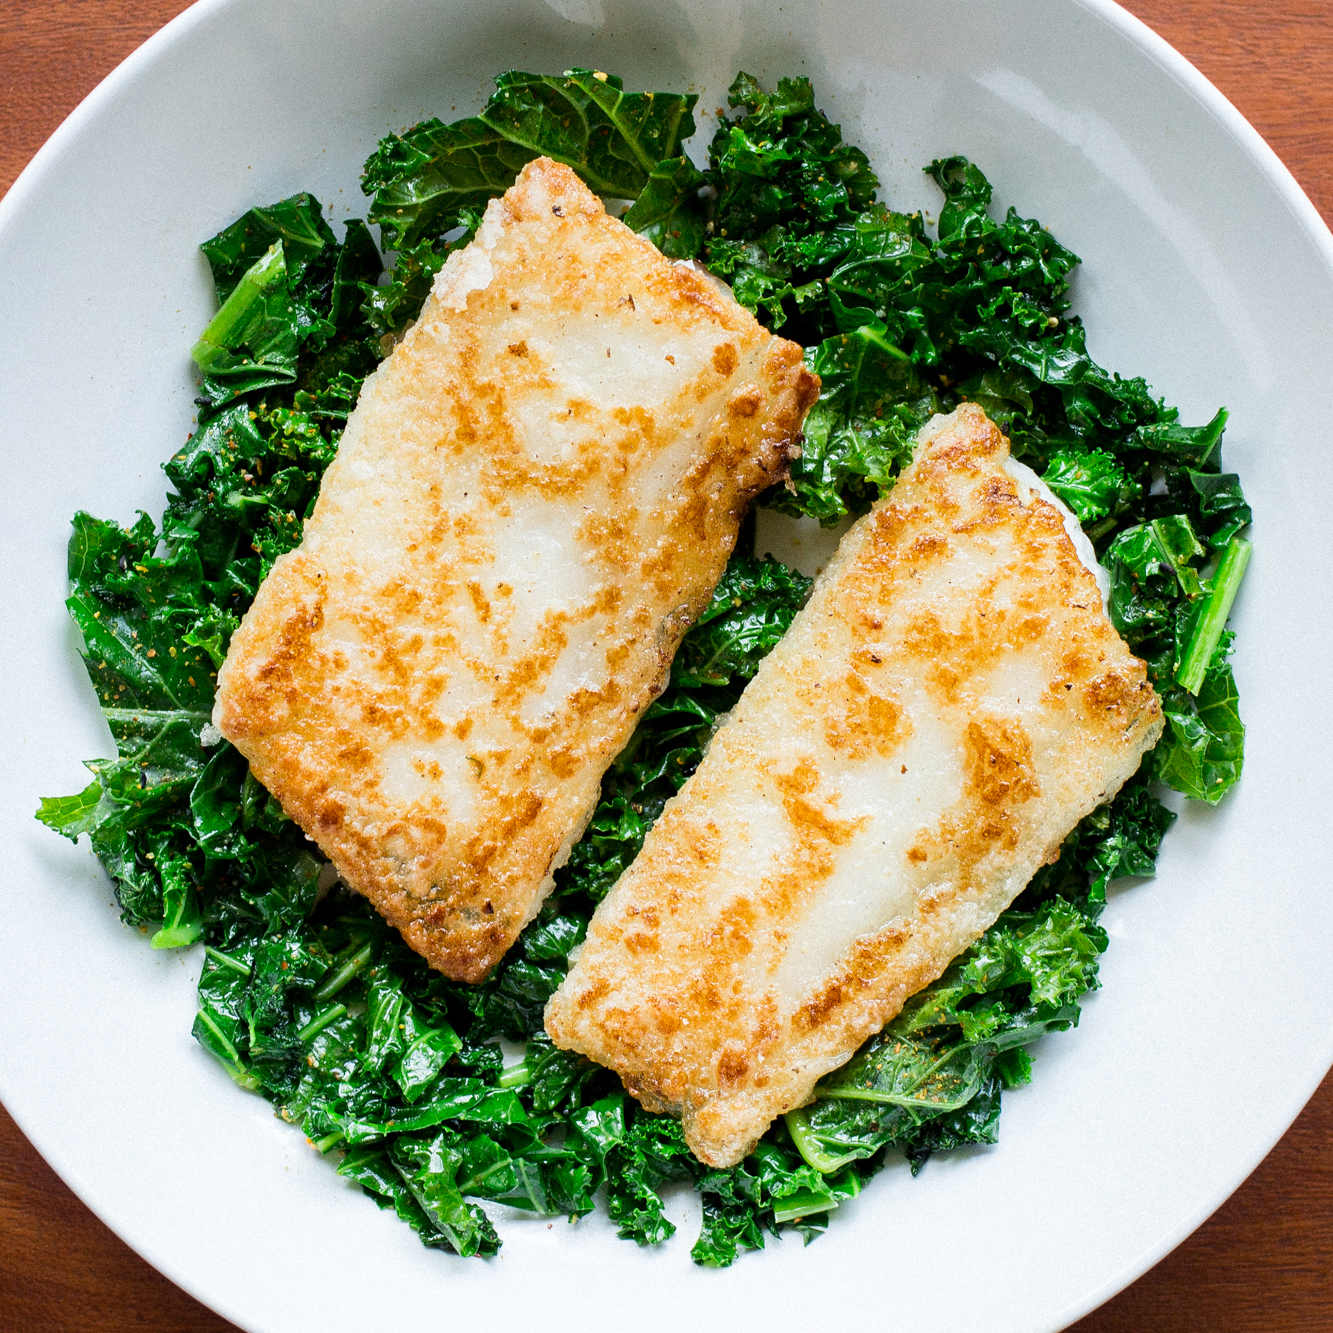 Shio Koji Whitefish and Vinegar-Braised Kale